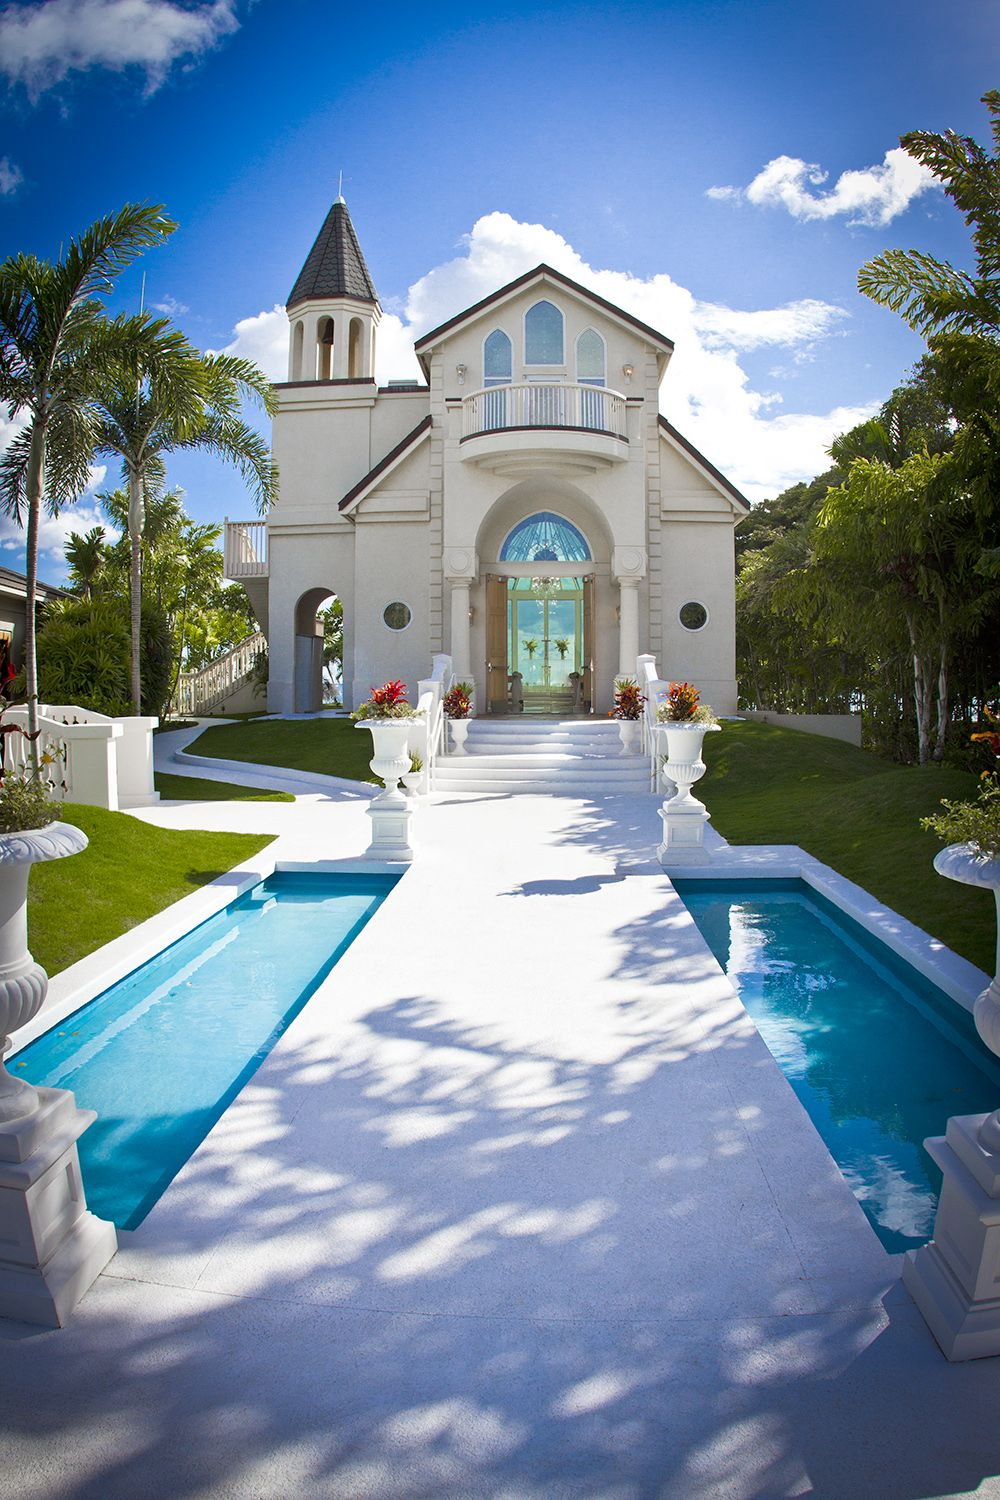 25 impossibly beautiful wedding locations in hawaii honolulu Wedding Ideas In Hawaii a beautiful photo of our paradise cove hawaii wedding chapel captured by a visitor wedding ideas in hawaii